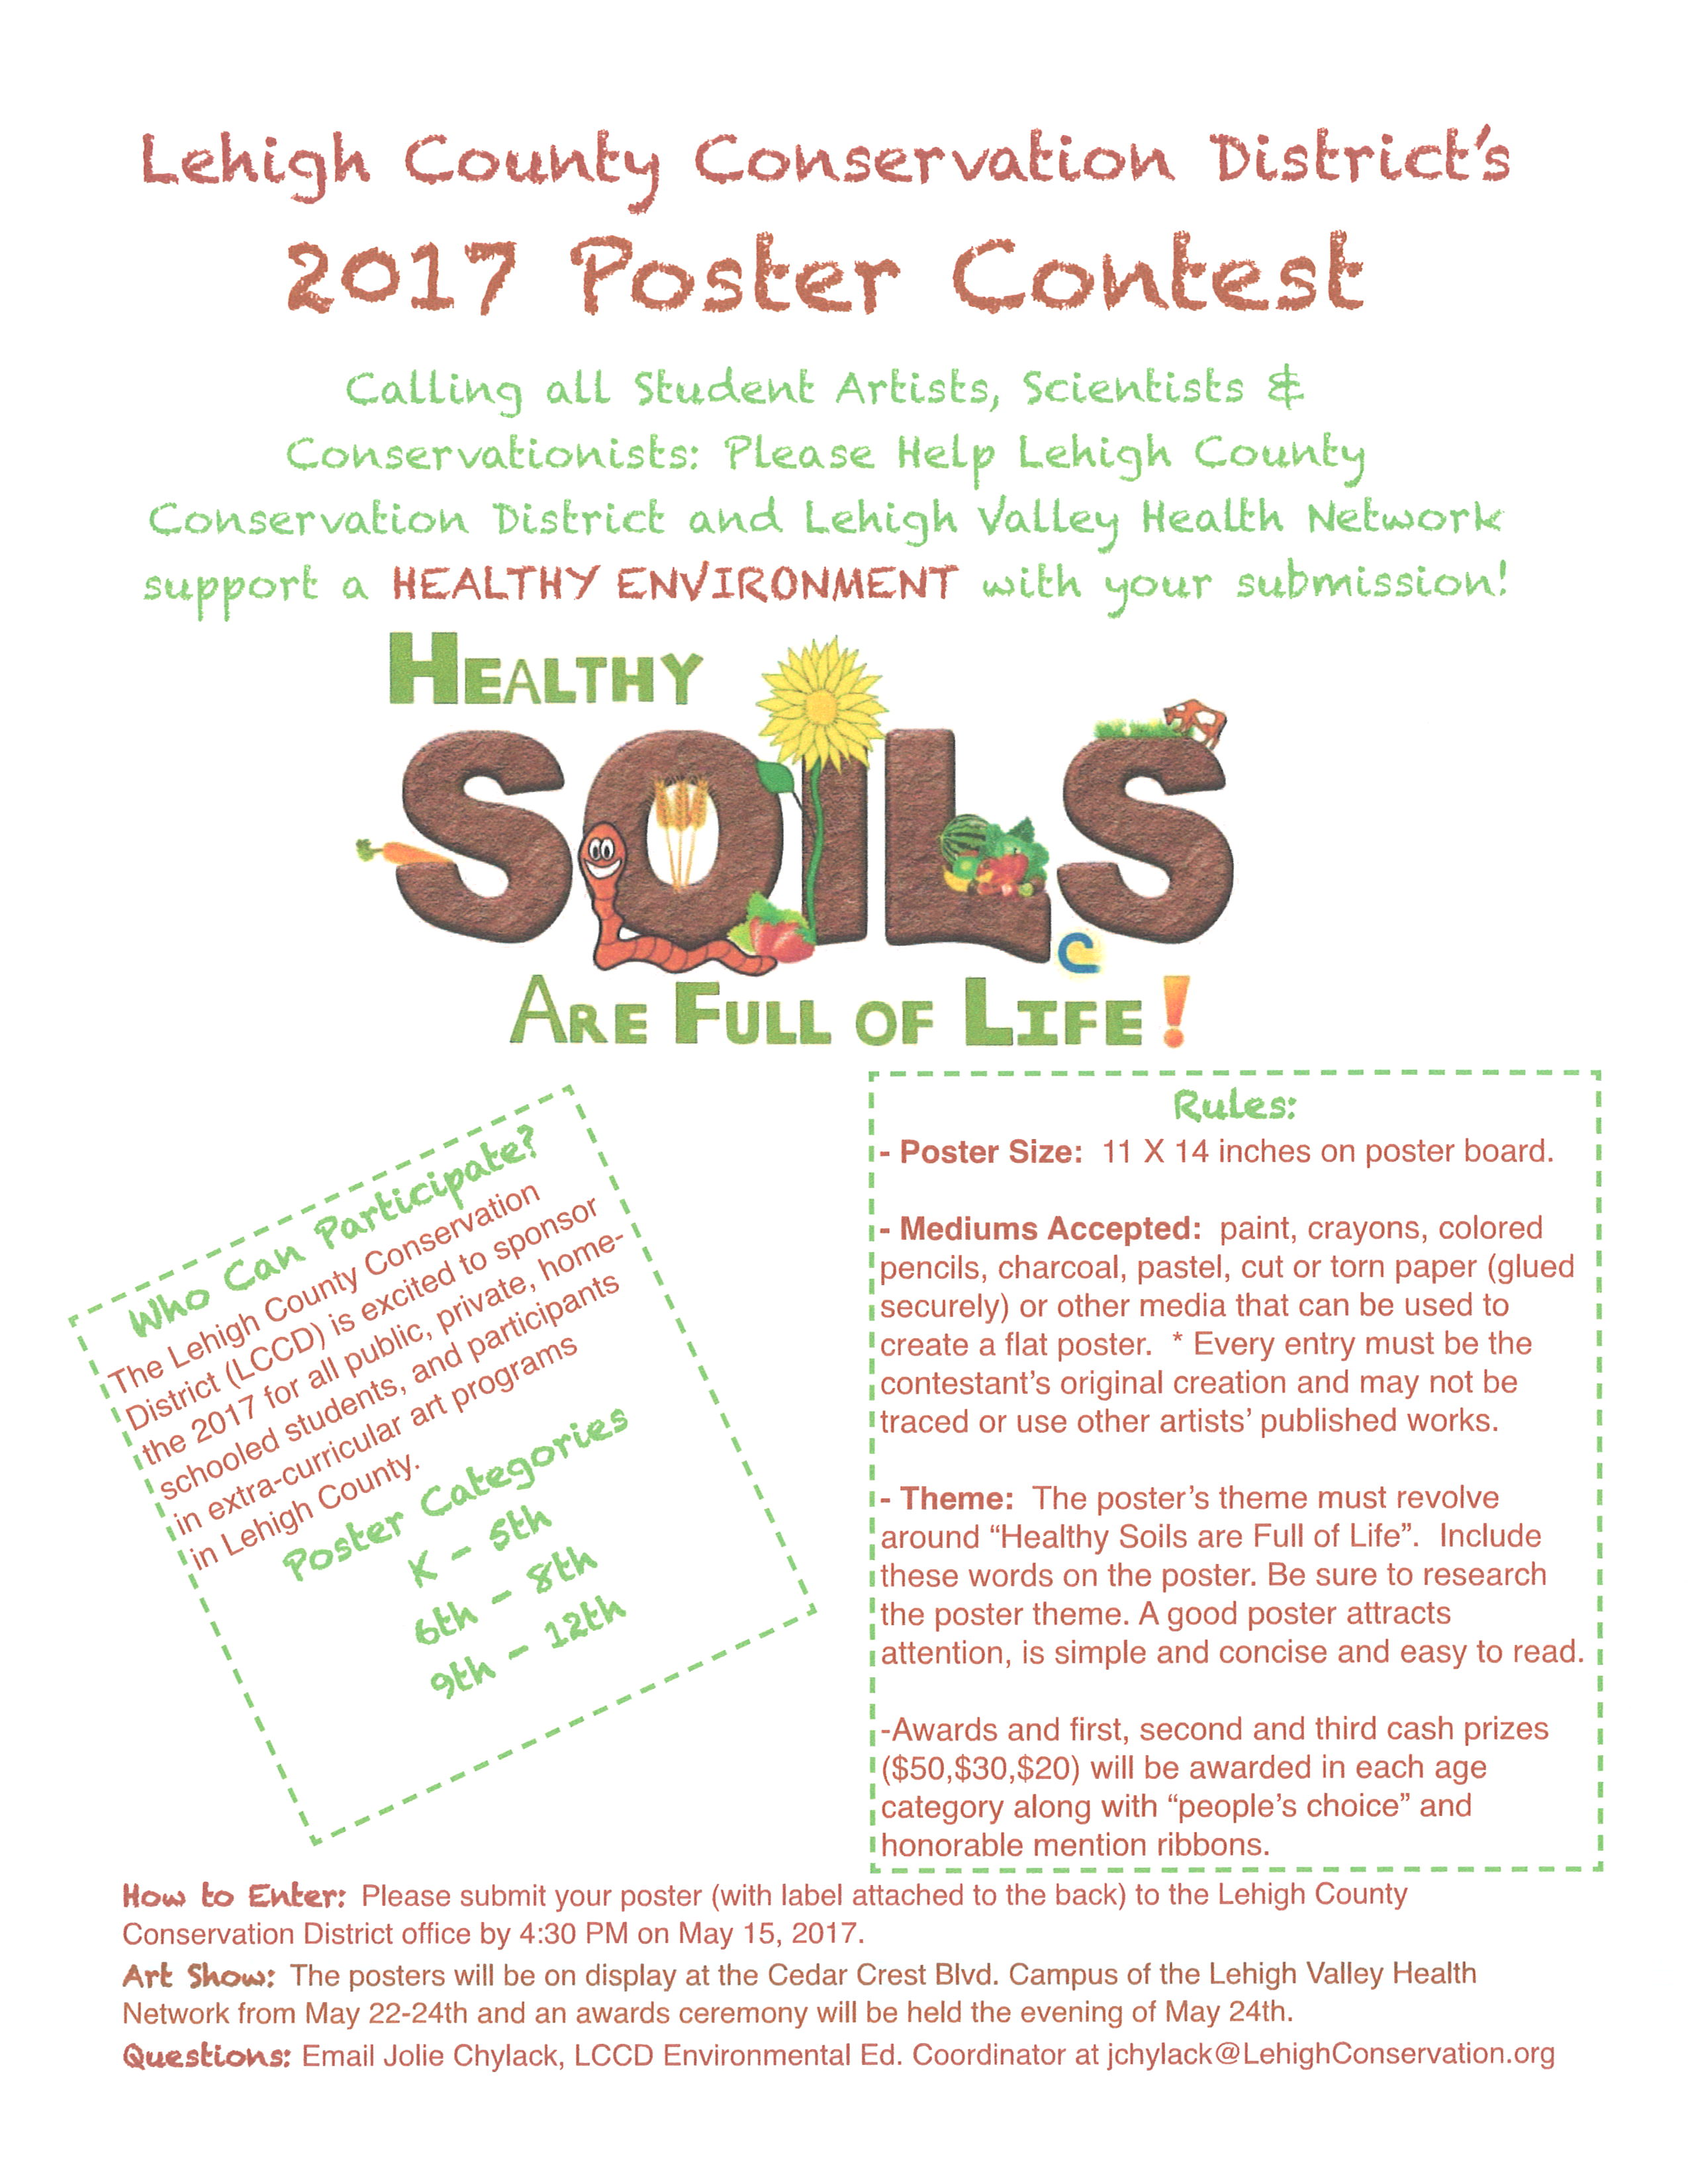 Healthy soils are full of life poster contest for Full form of soil